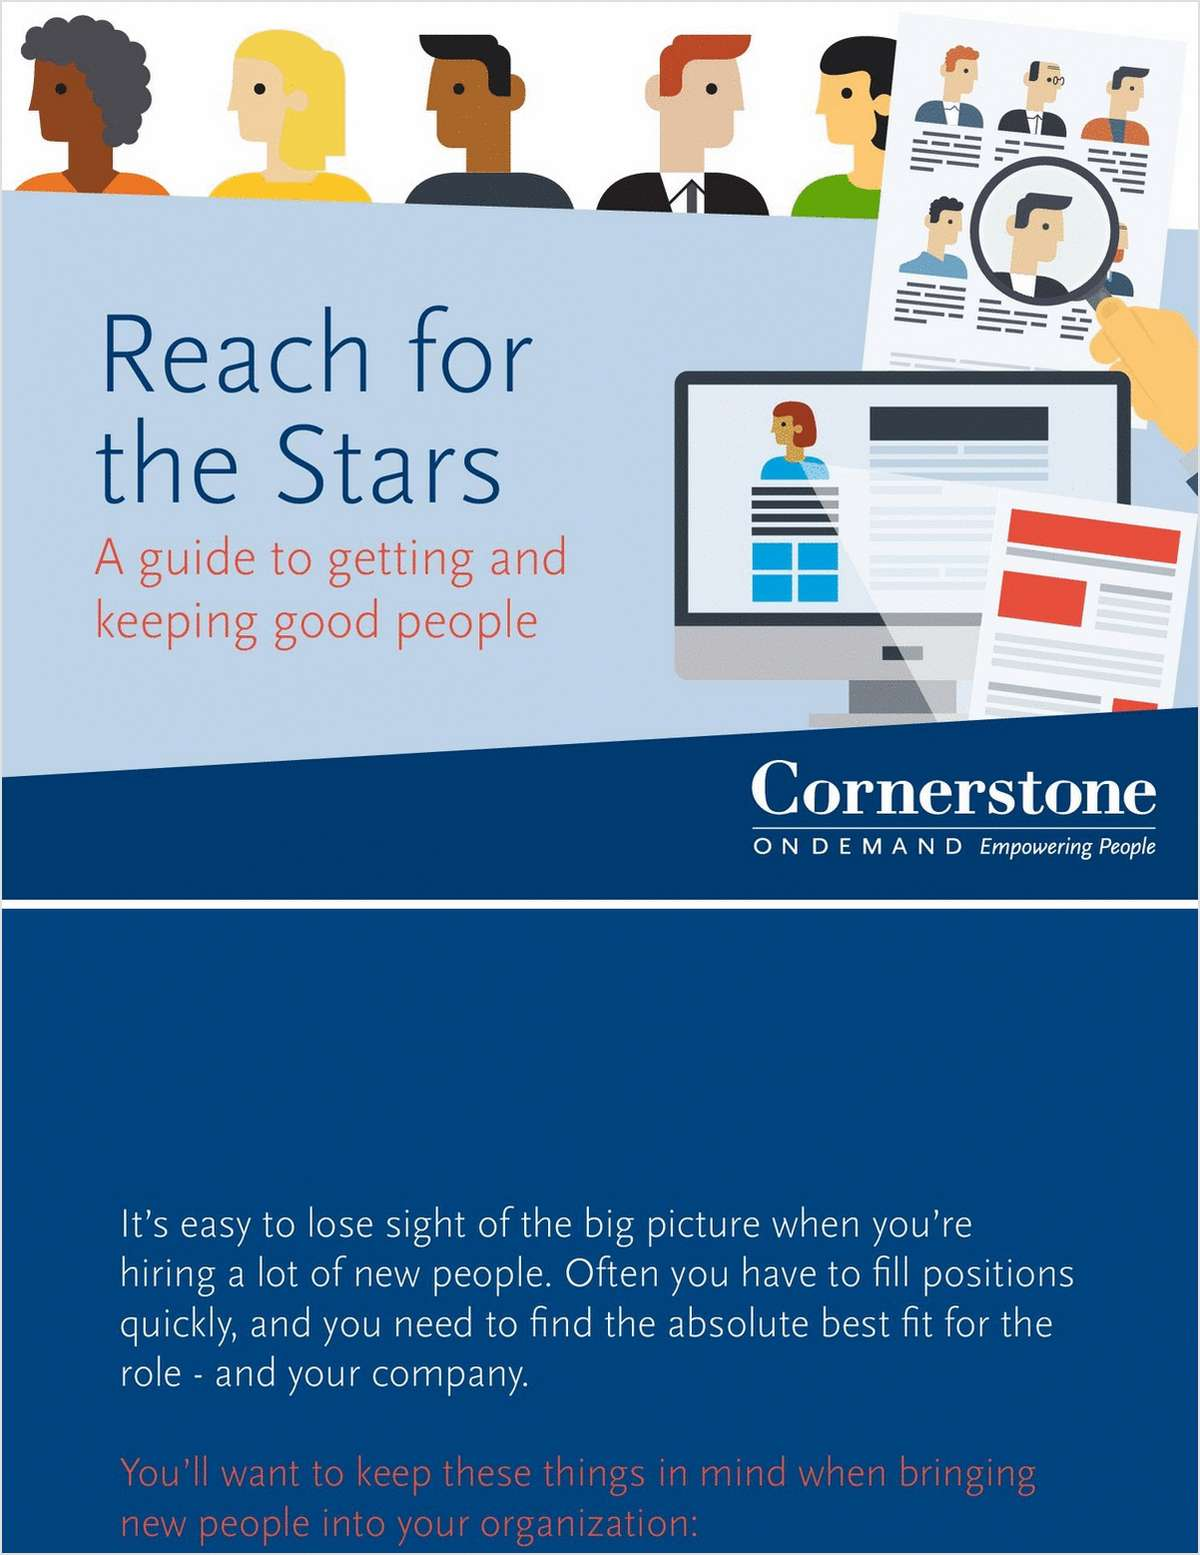 Reach for the Stars - A Guide to Getting and Keeping Good People